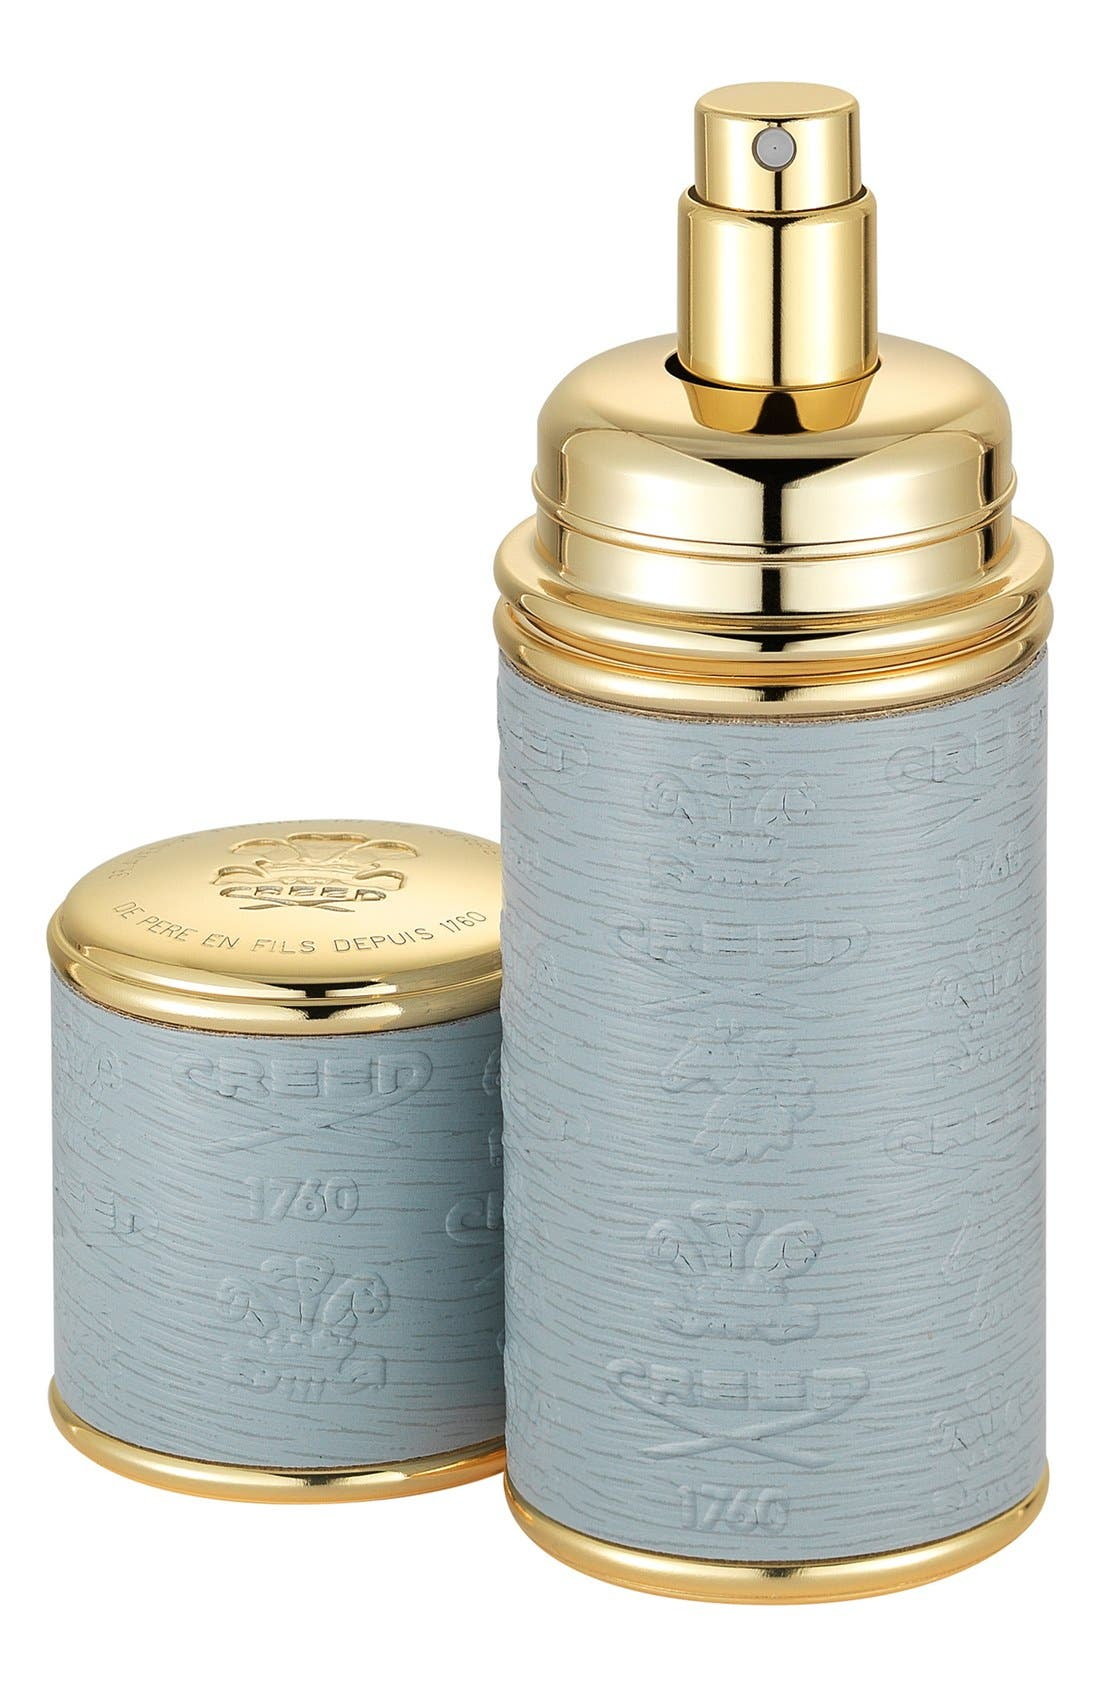 Grey with Gold Trim Leather Atomizer,                             Main thumbnail 1, color,                             NO COLOR